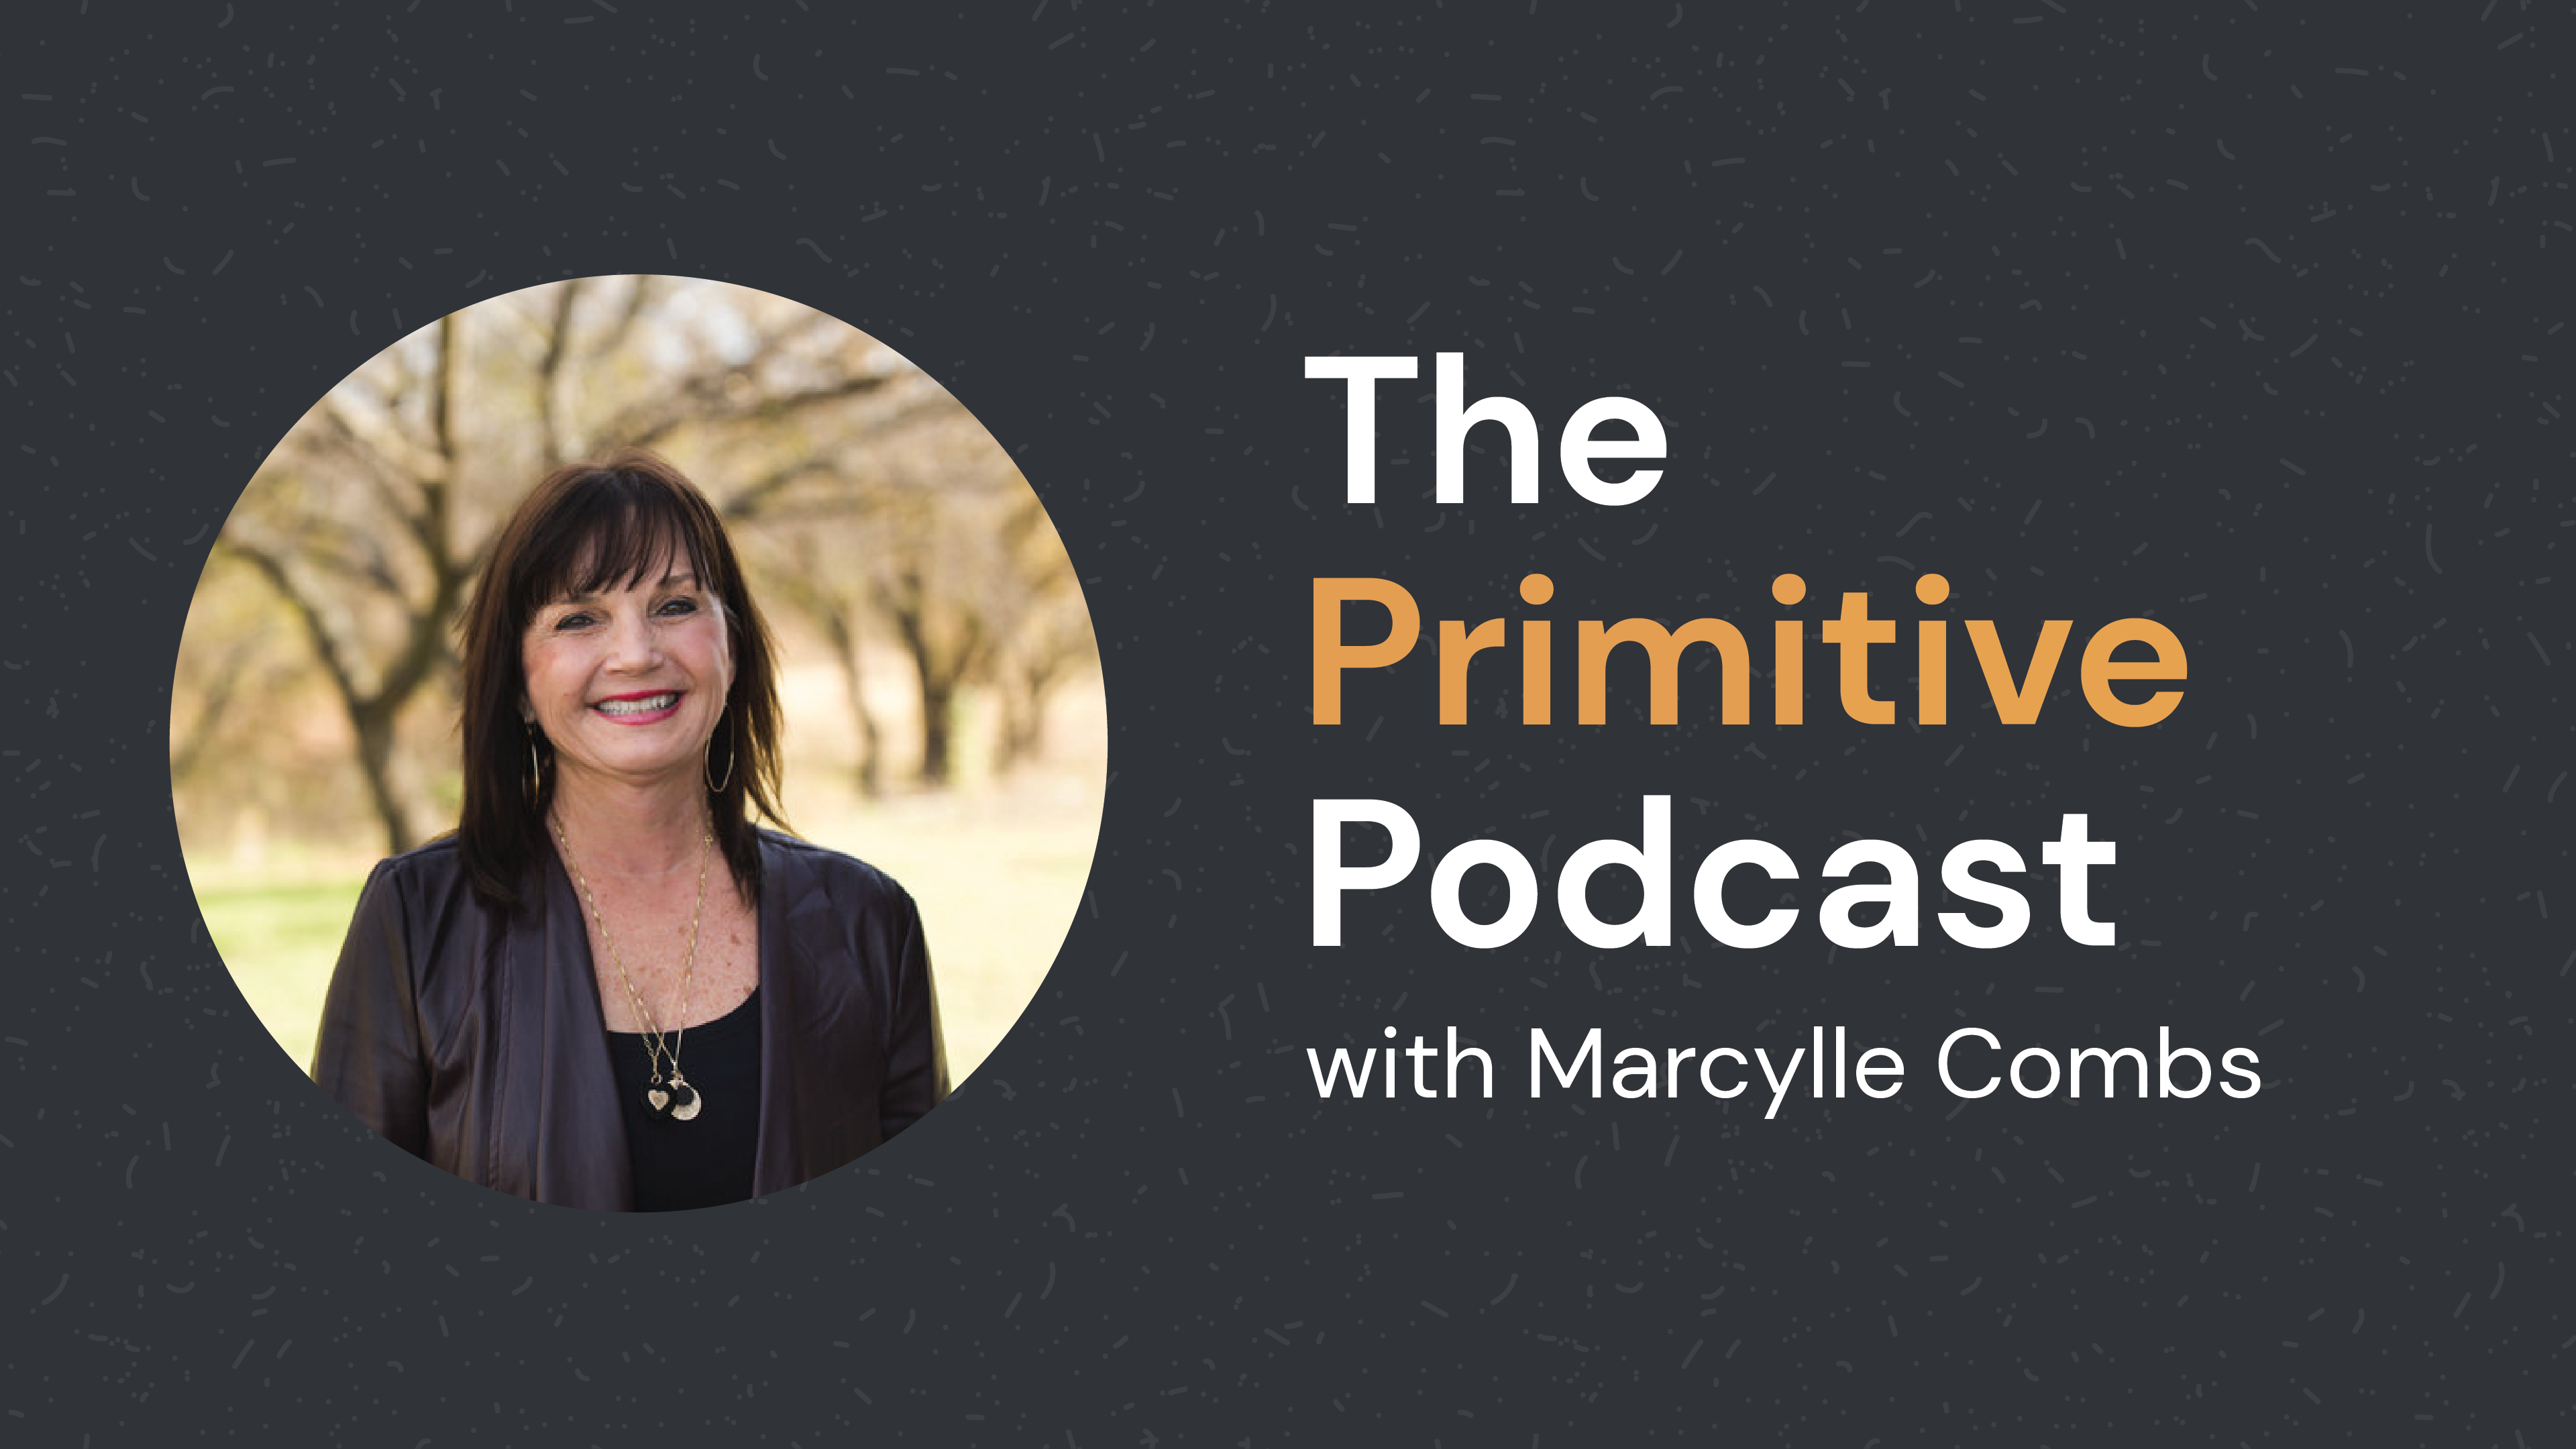 The Primitive Podcast with Marcylle Combs